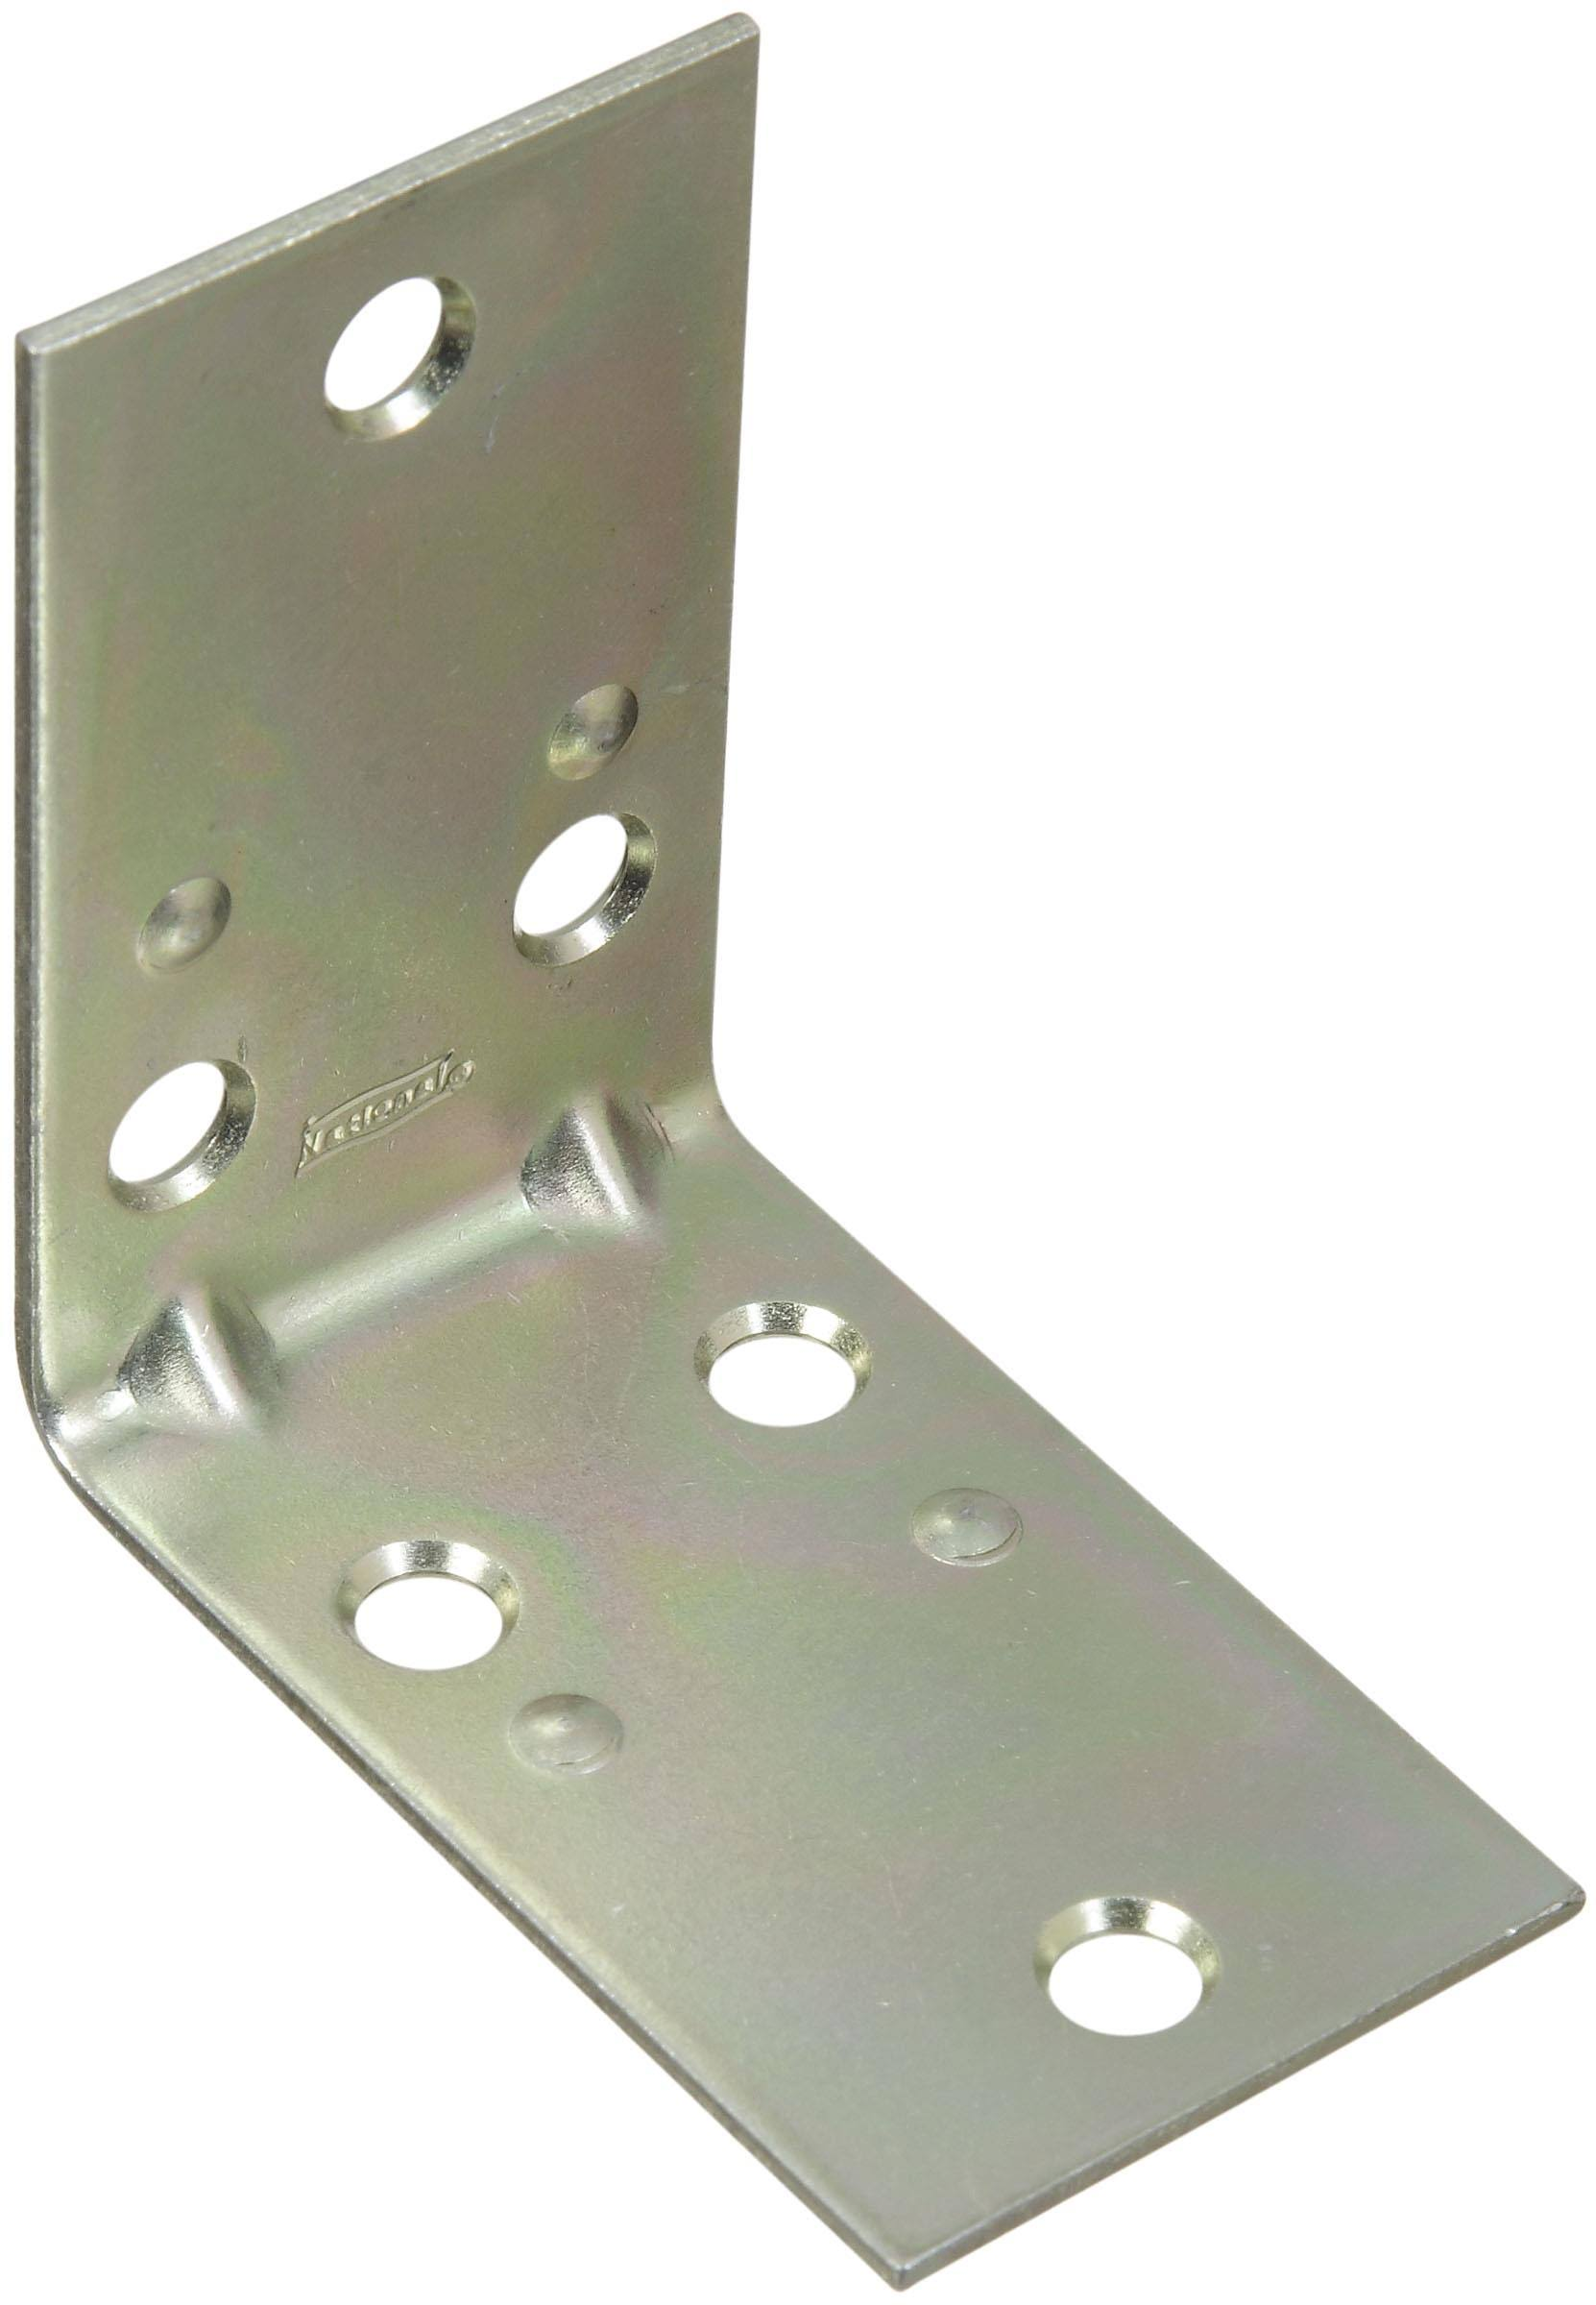 "National Hardware N285-569 Corner Brace - 2 1/2"" x 1 1/2"", Zinc Plated"